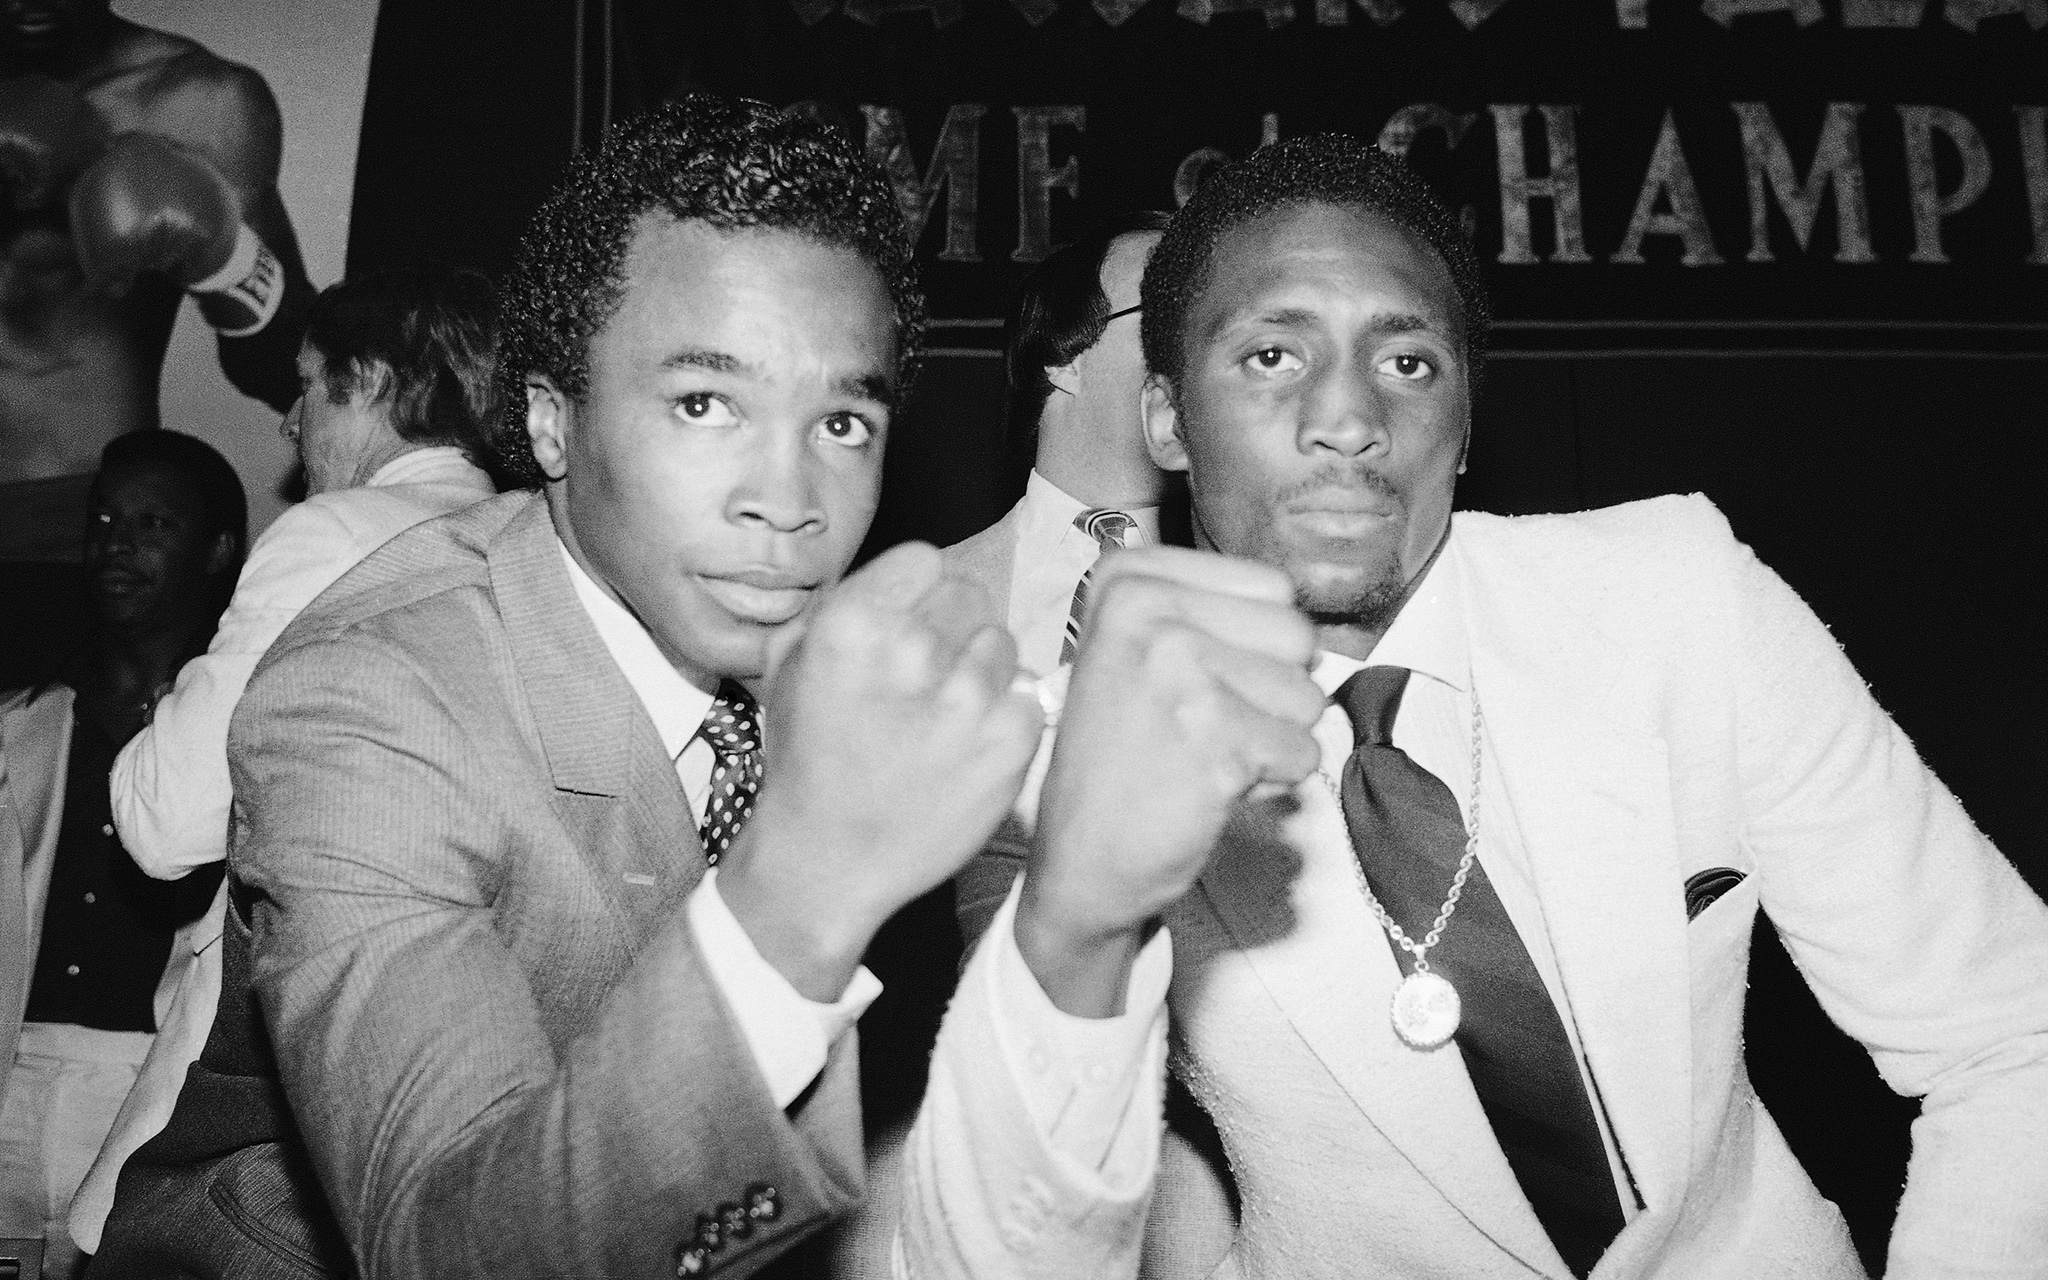 Leonard vs. Hearns